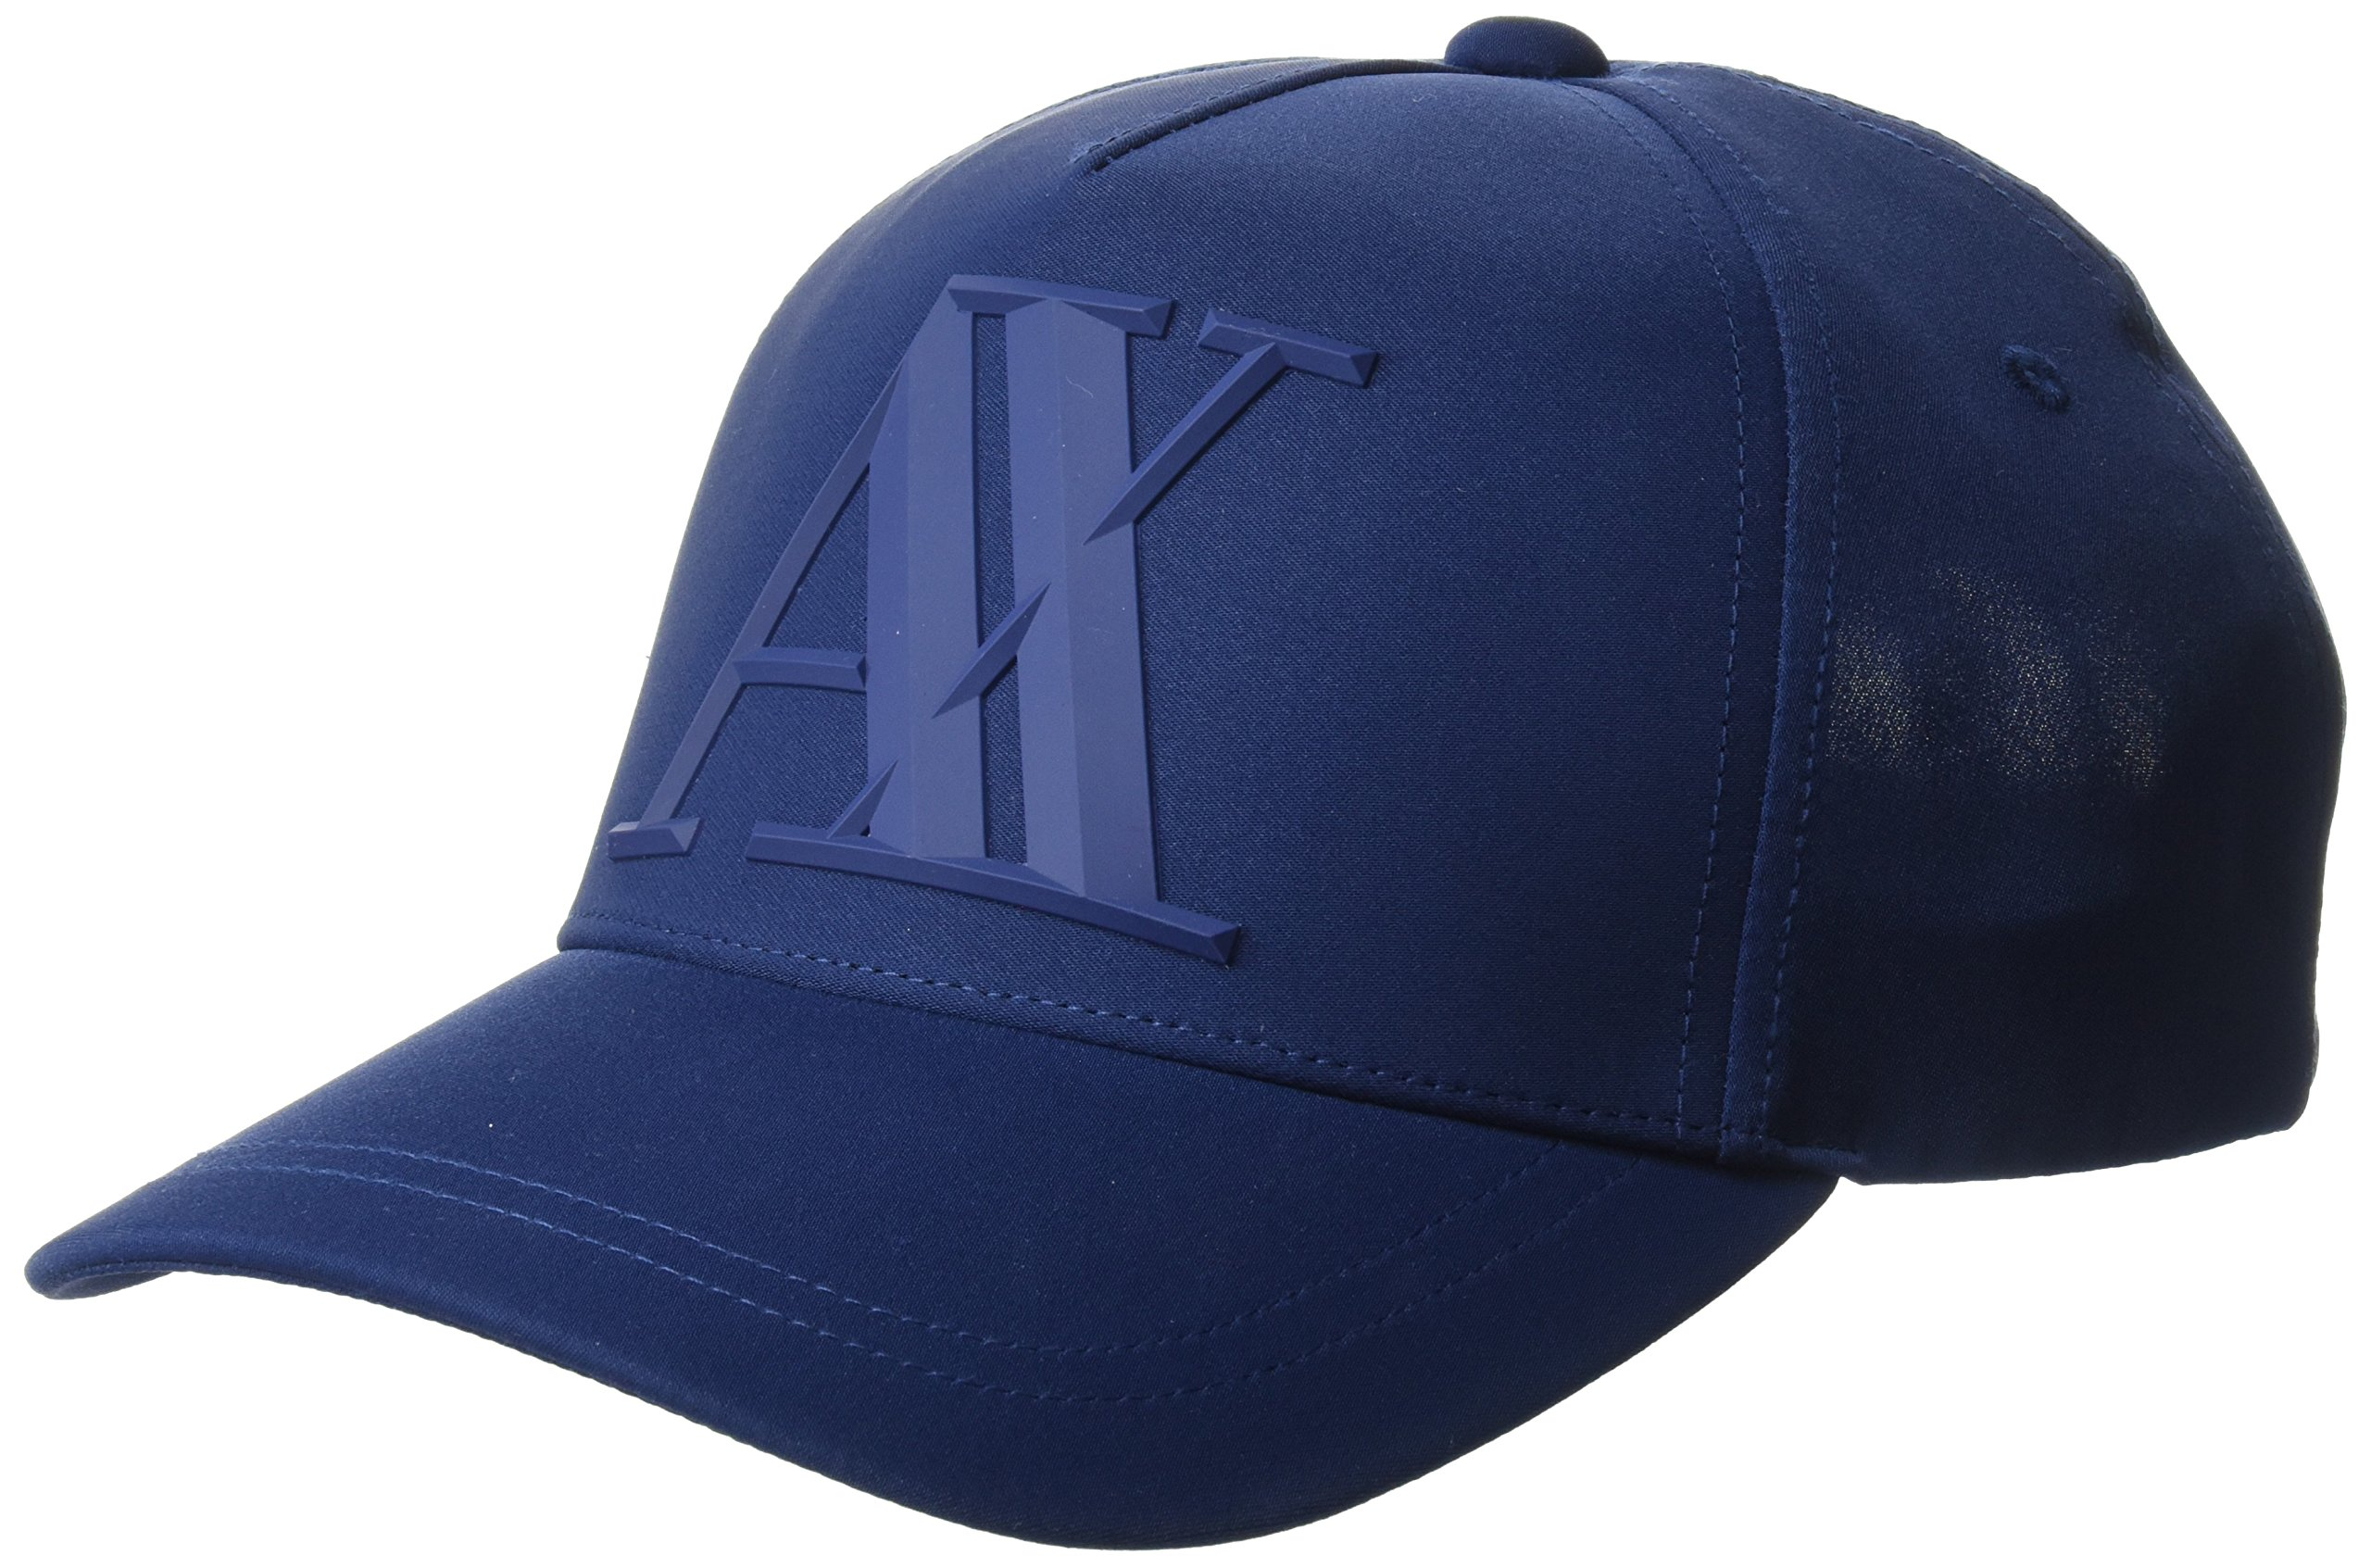 22795b314 A|X Armani Exchange Men's a|X Logo Hat, Navy Peony, TU